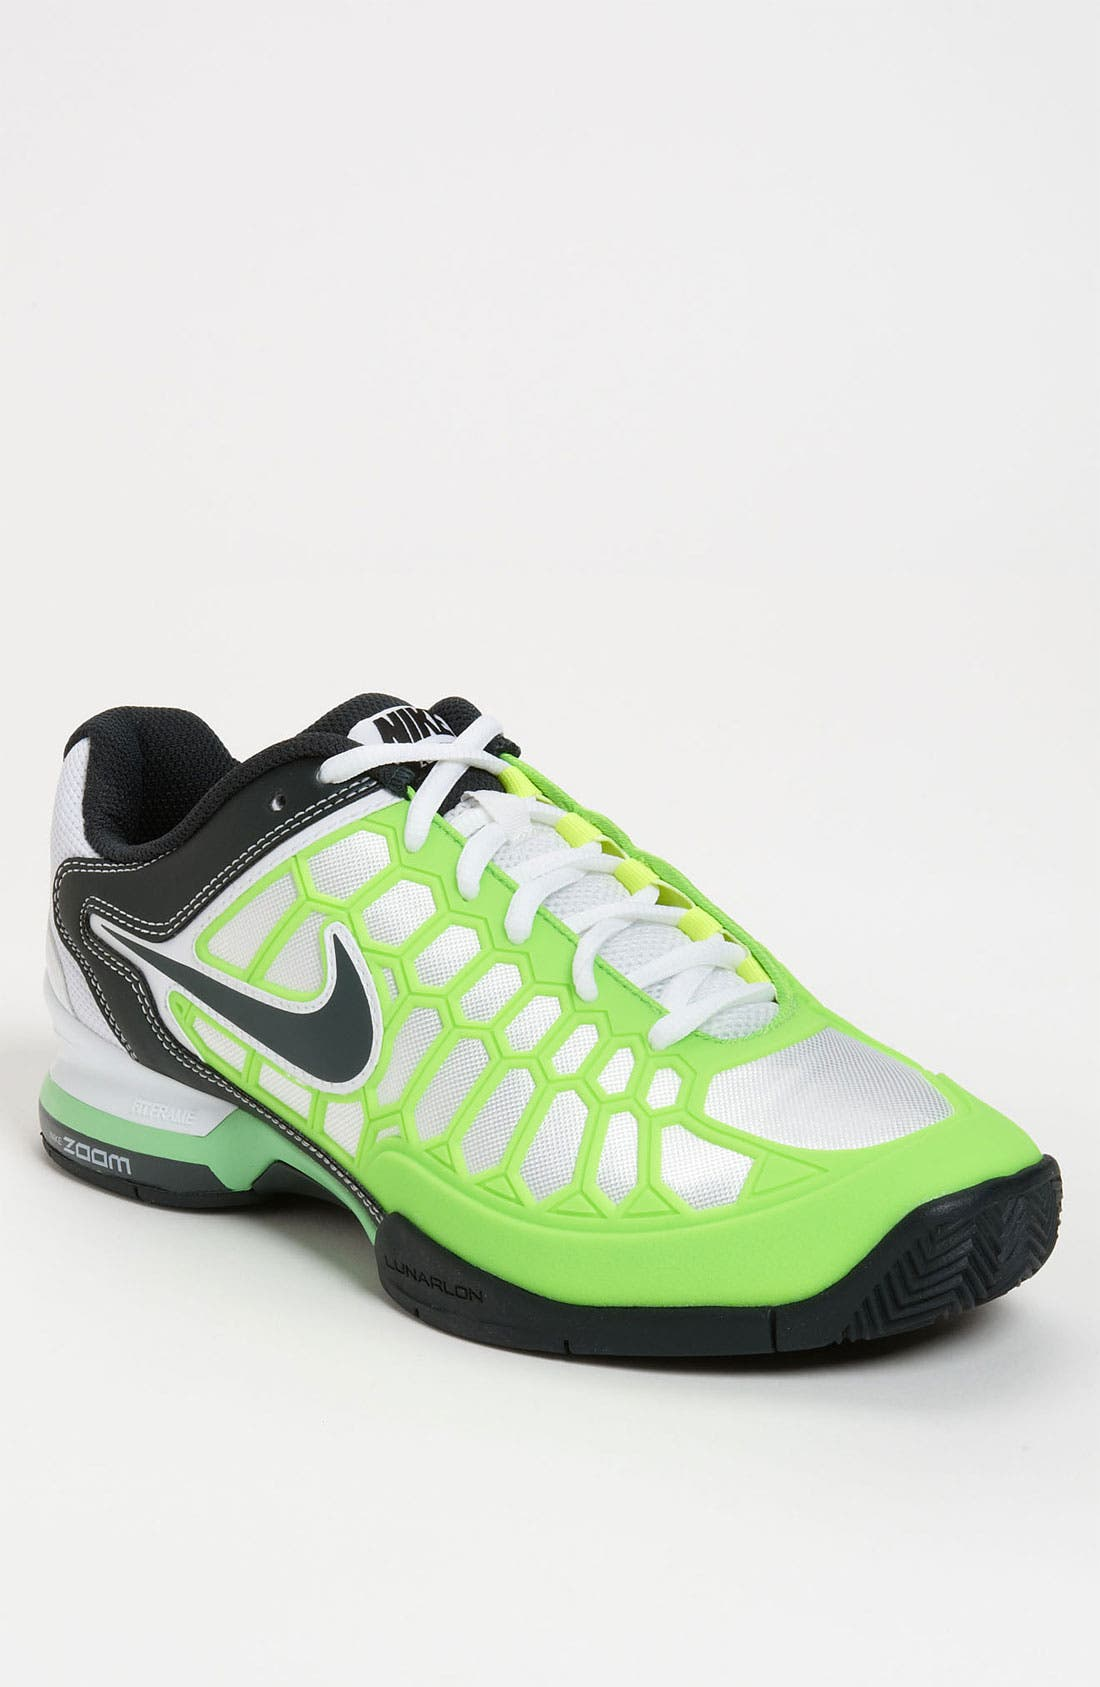 Main Image - Nike 'Zoom Breathe 2K12' Tennis Shoe (Men)